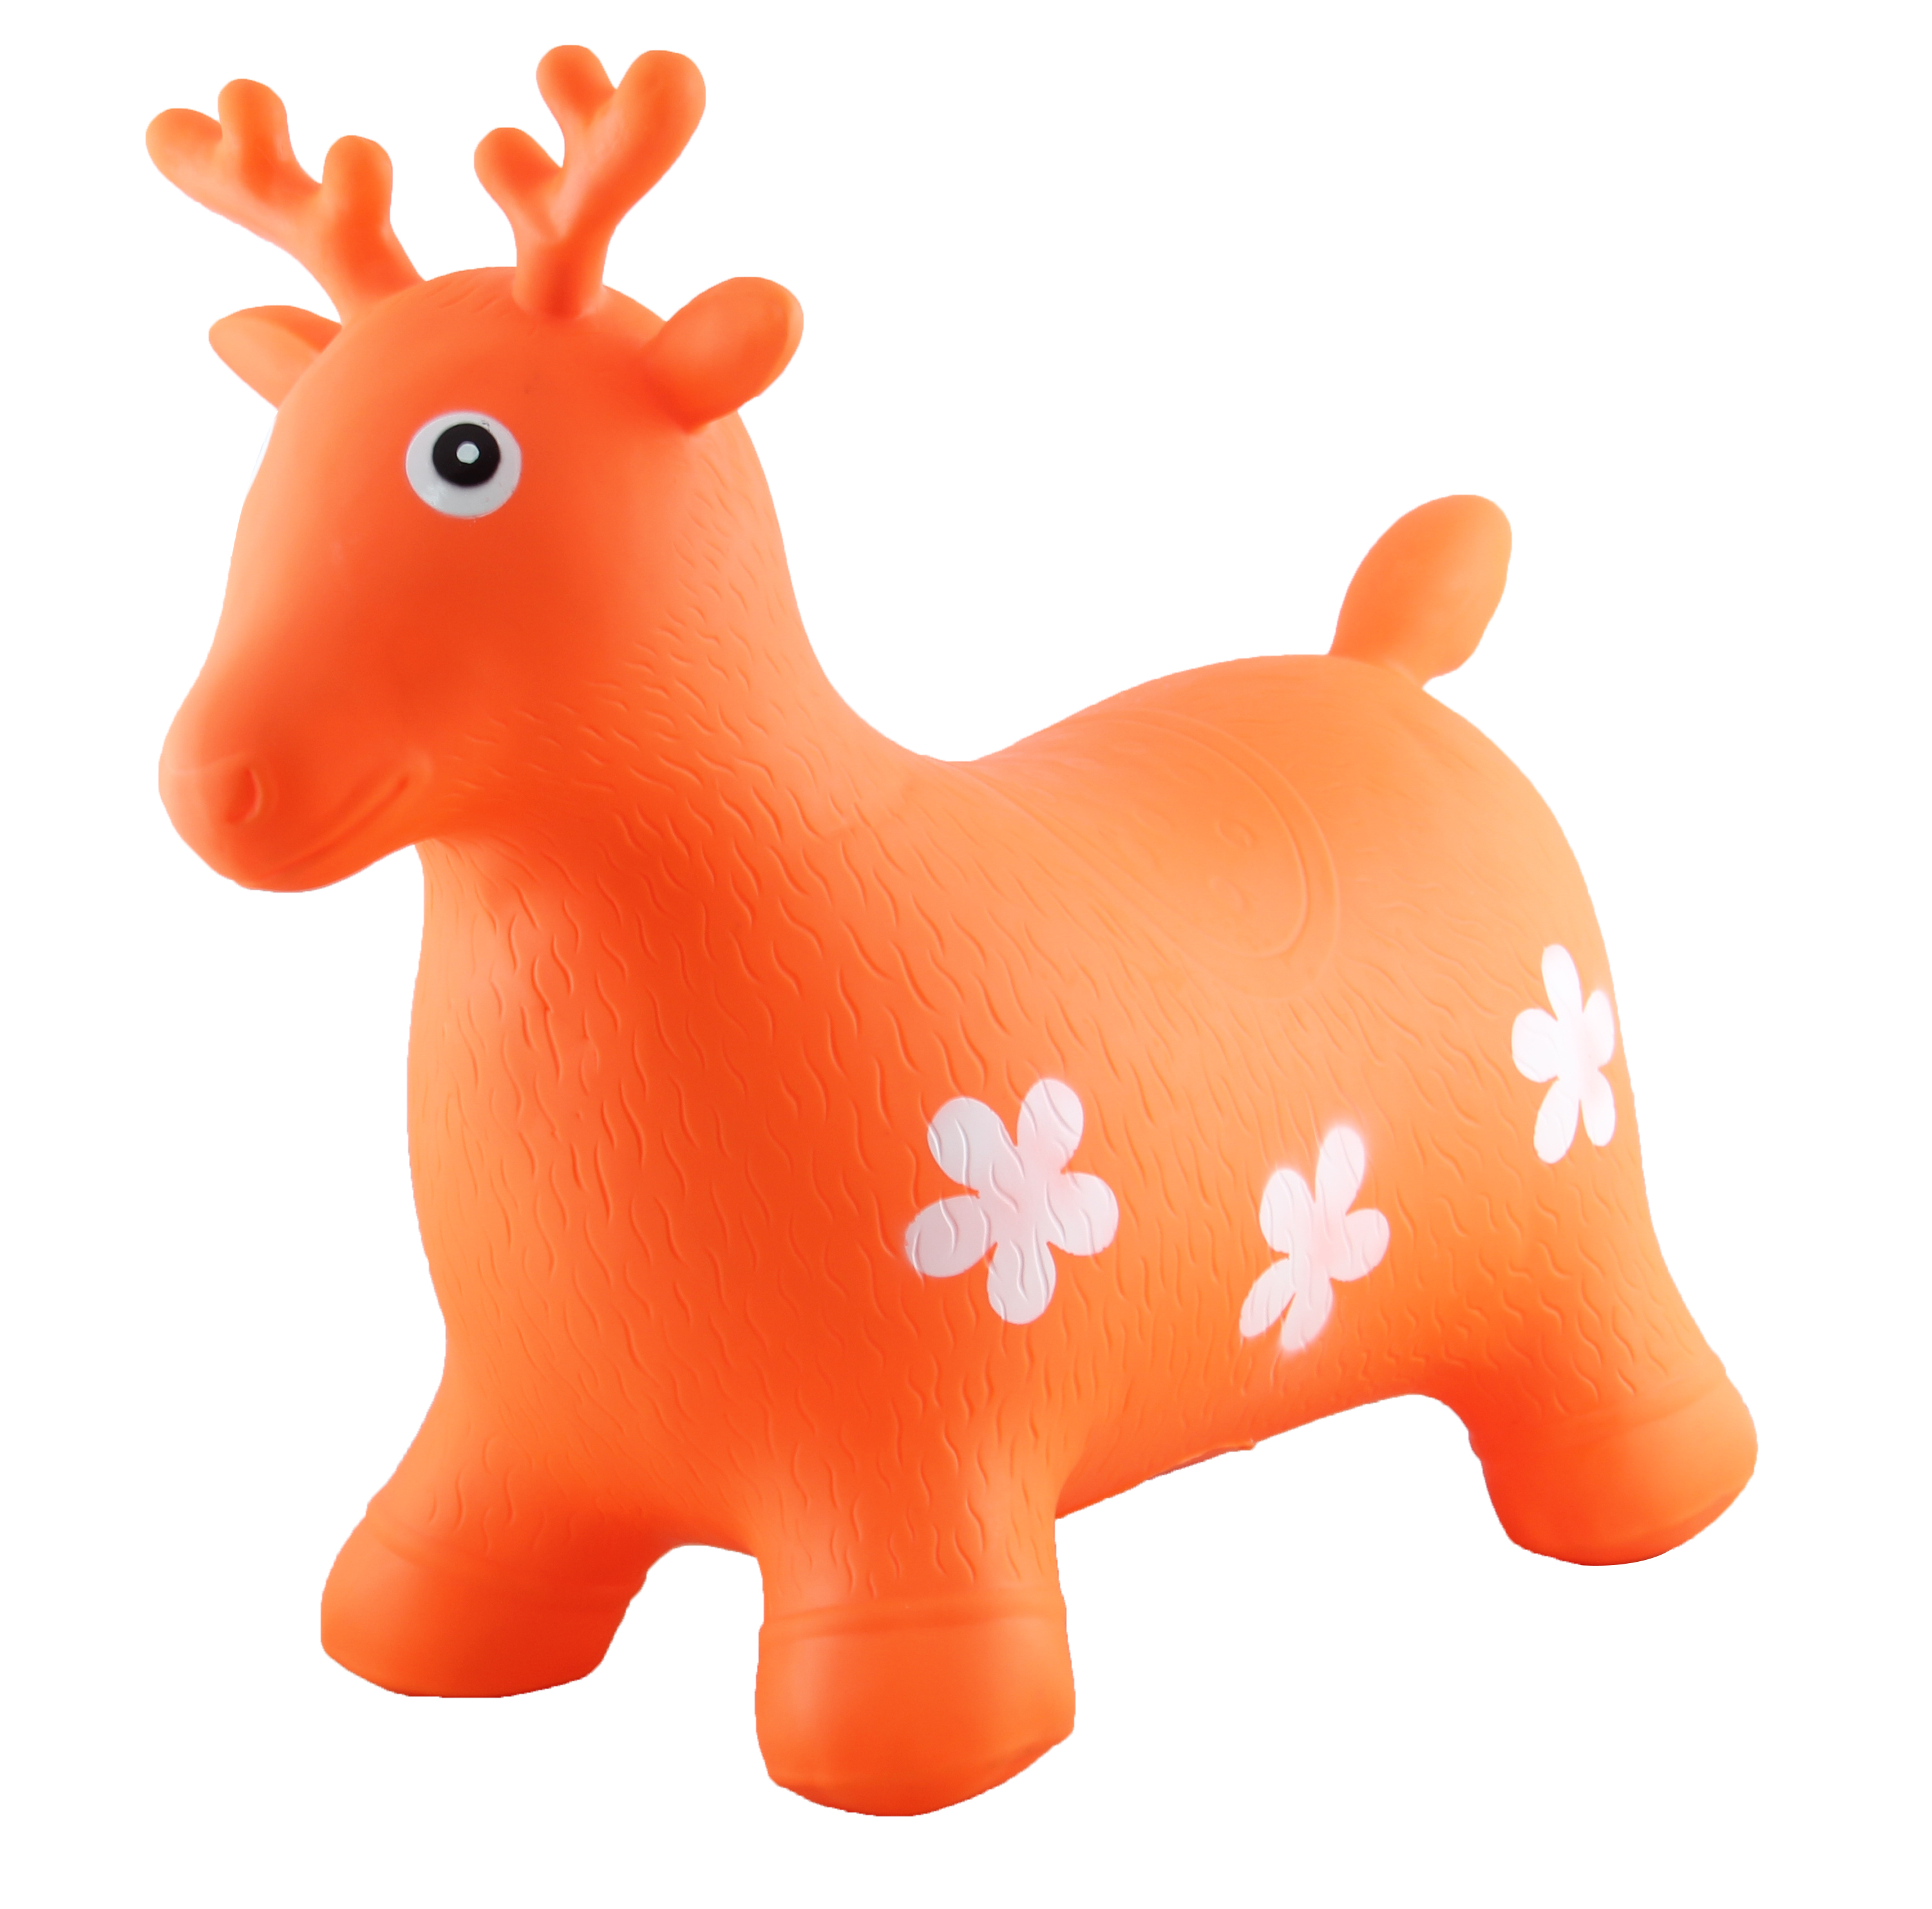 Inflatable Eco-friendly PVC material Ride-on Animal bouncing Deer indoor & outdoor toys